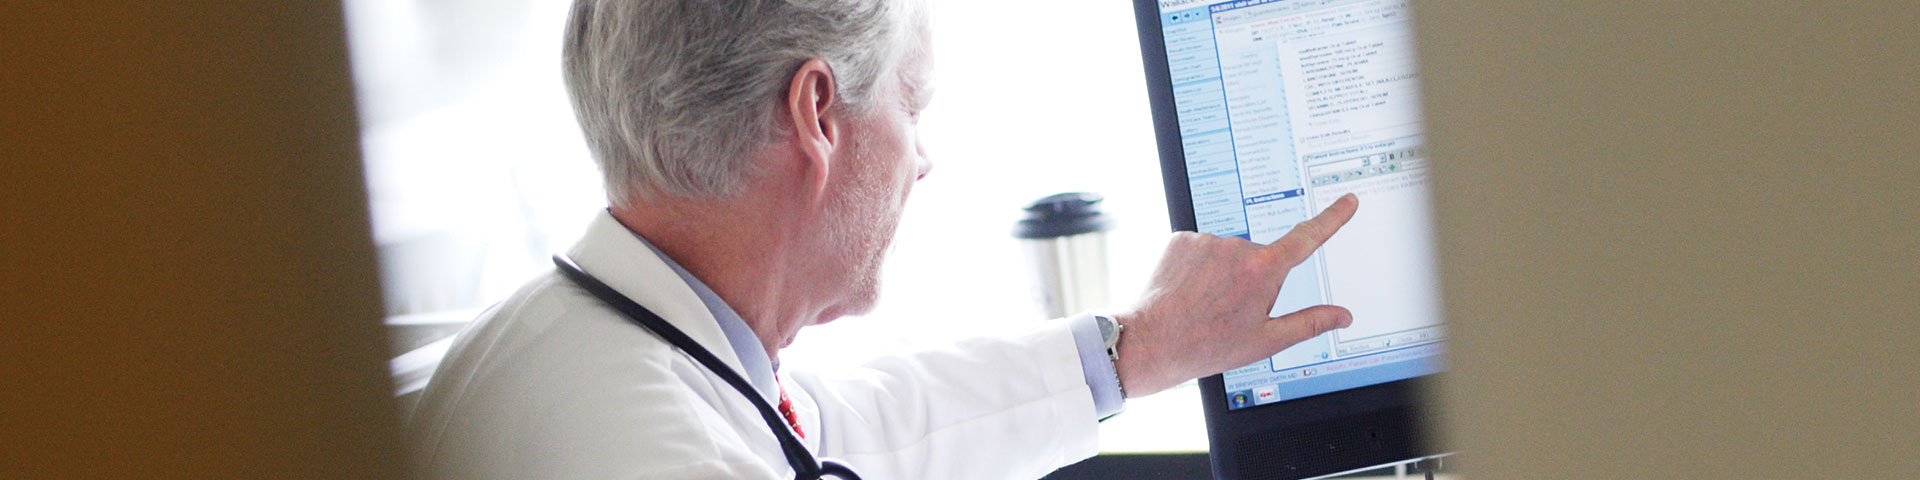 Picture of Physician pointing to computer screen